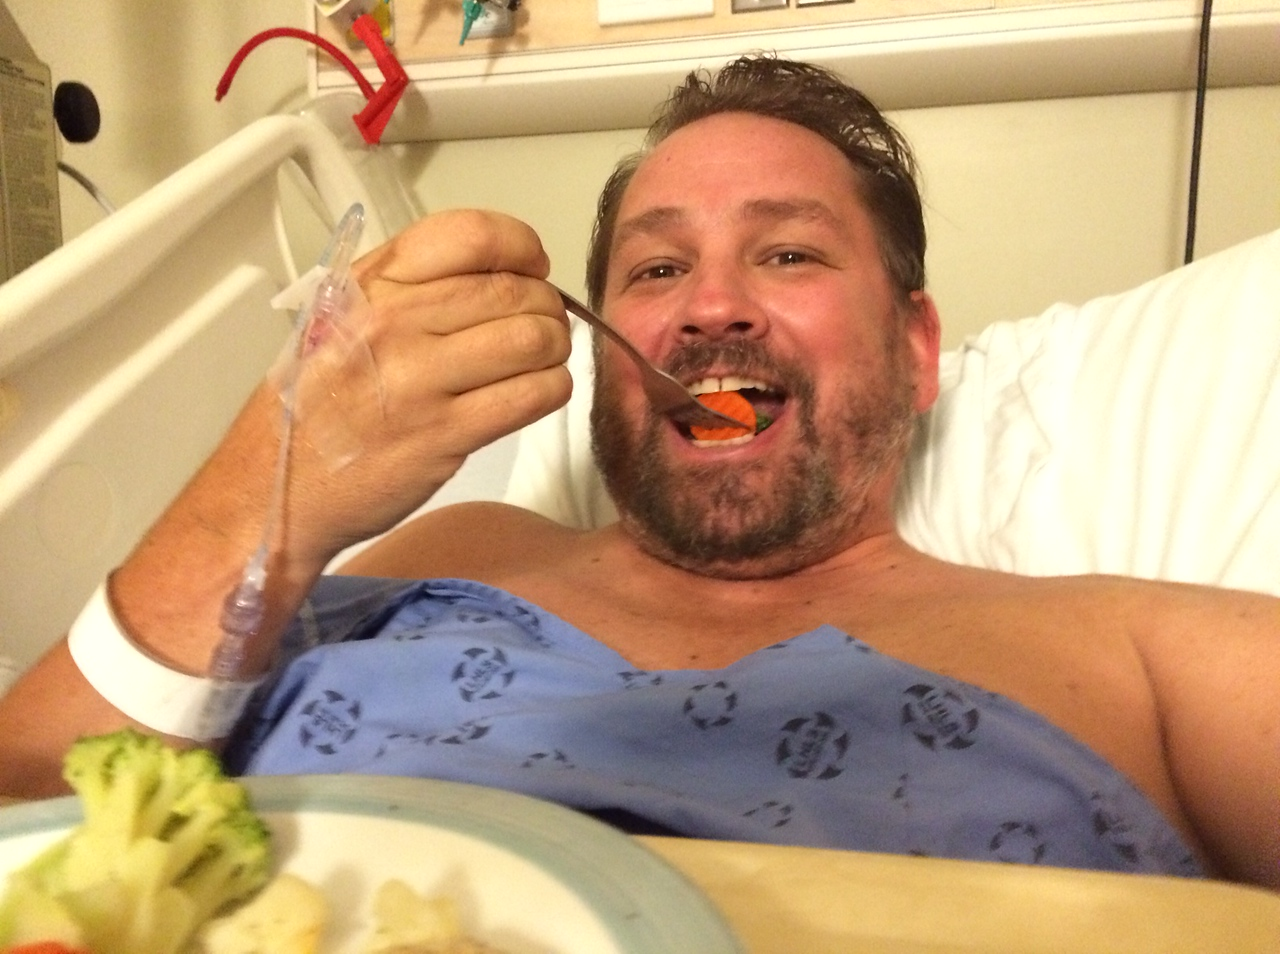 Dave eating in hospital